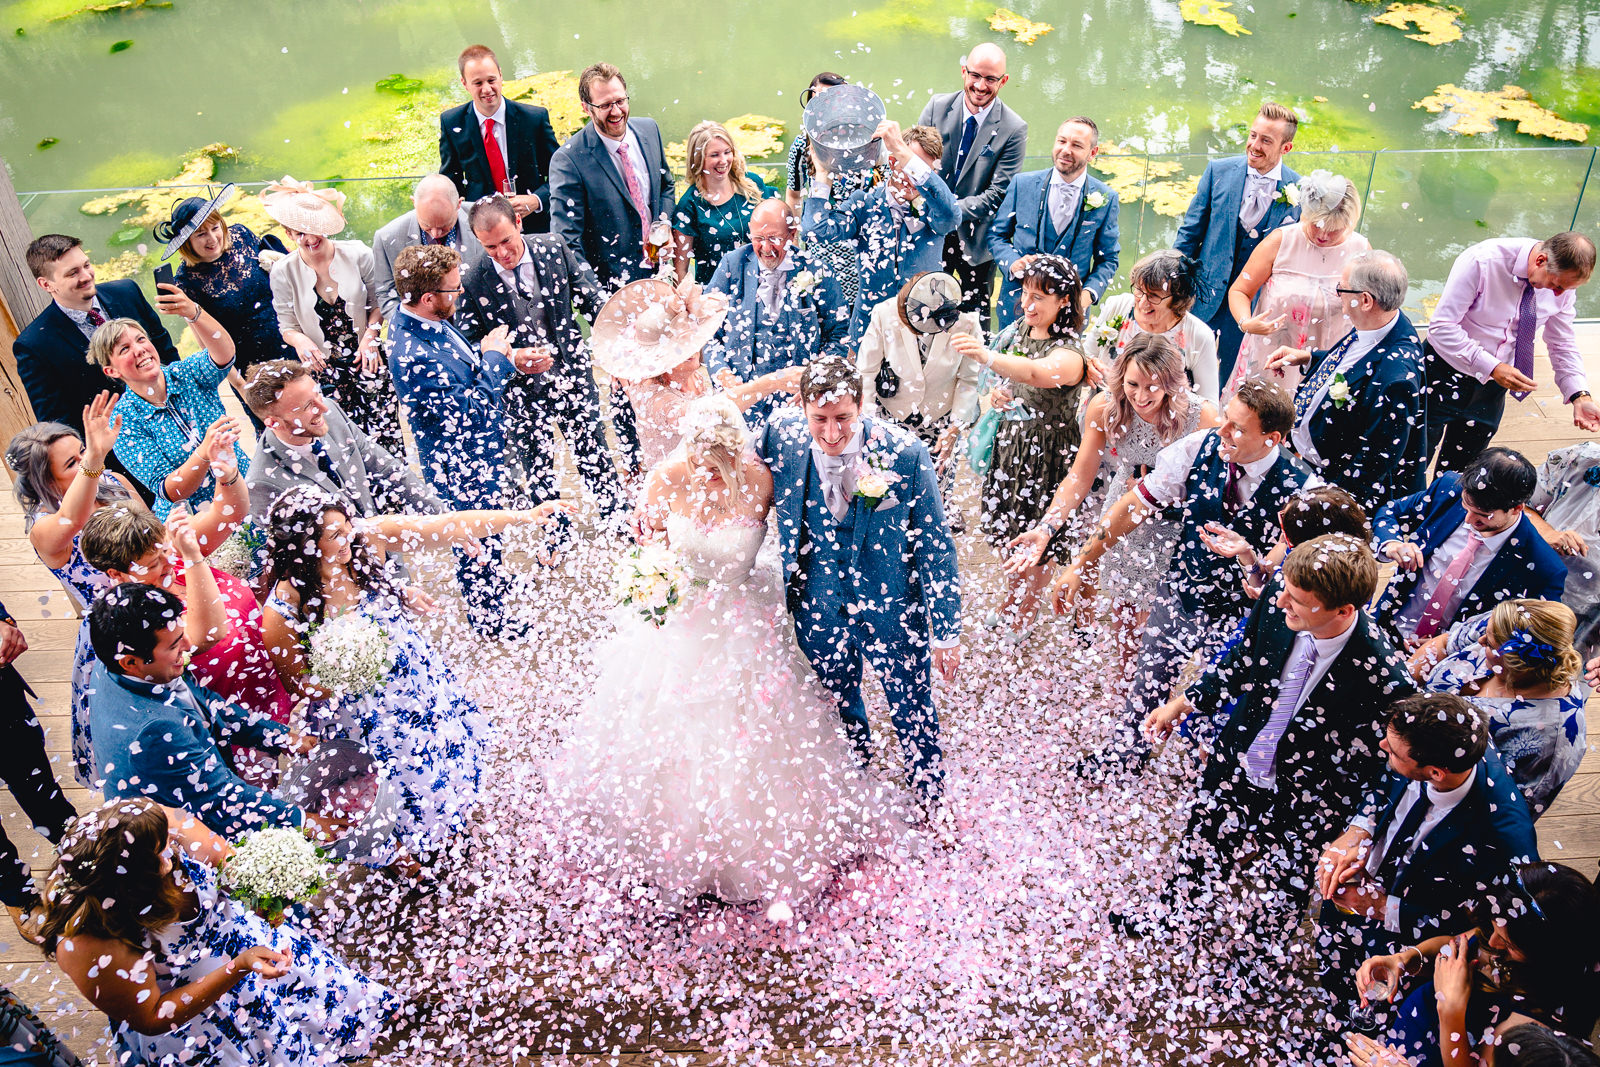 Relaxed wedding, The Dignums Photography, Unconventional Wedding, Alterative Wedding, Chilled out wedding, simple wedding, quirky wedding inspiration, wedding planning, unique wedding- wedding confetti